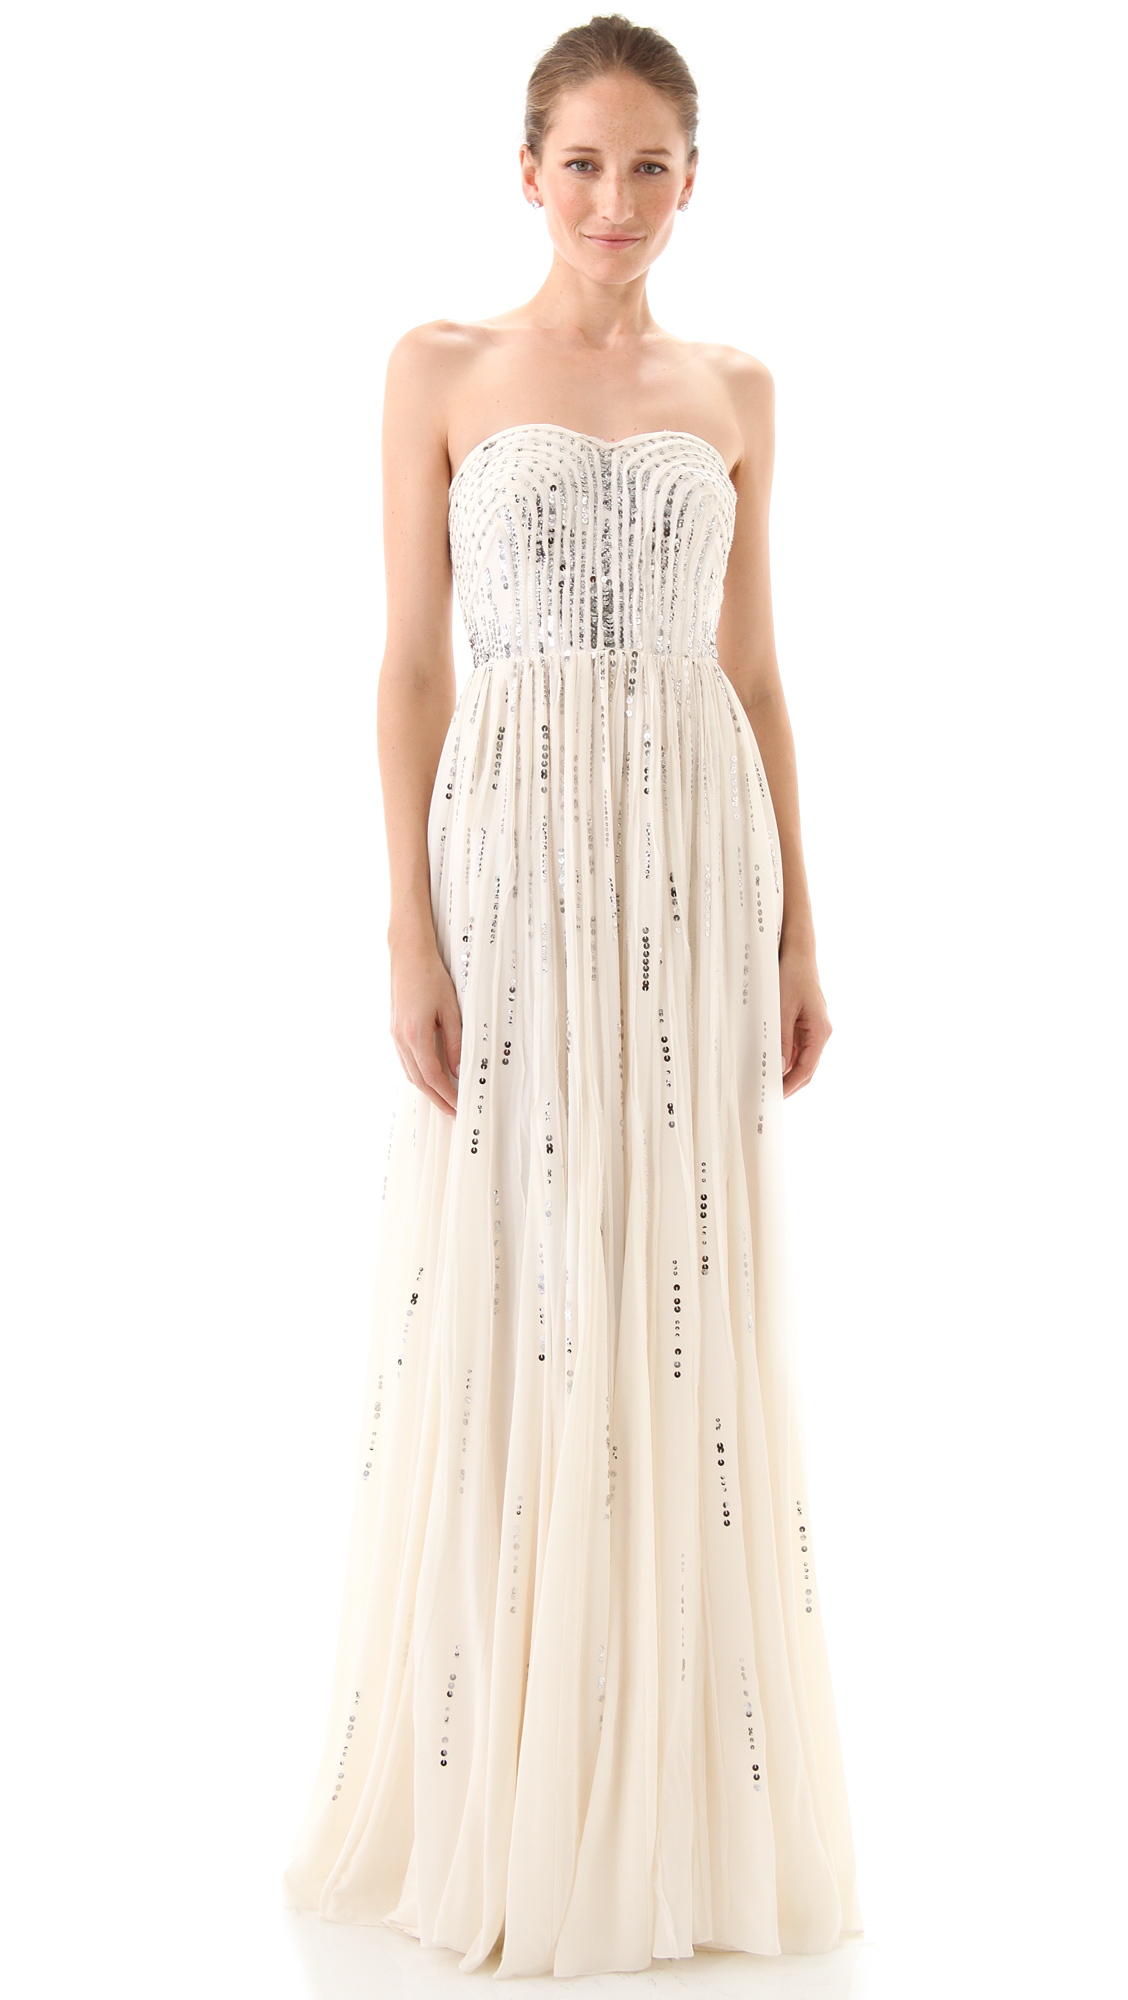 Lyst - Rebecca Taylor Frayed Strapless Gown in Natural